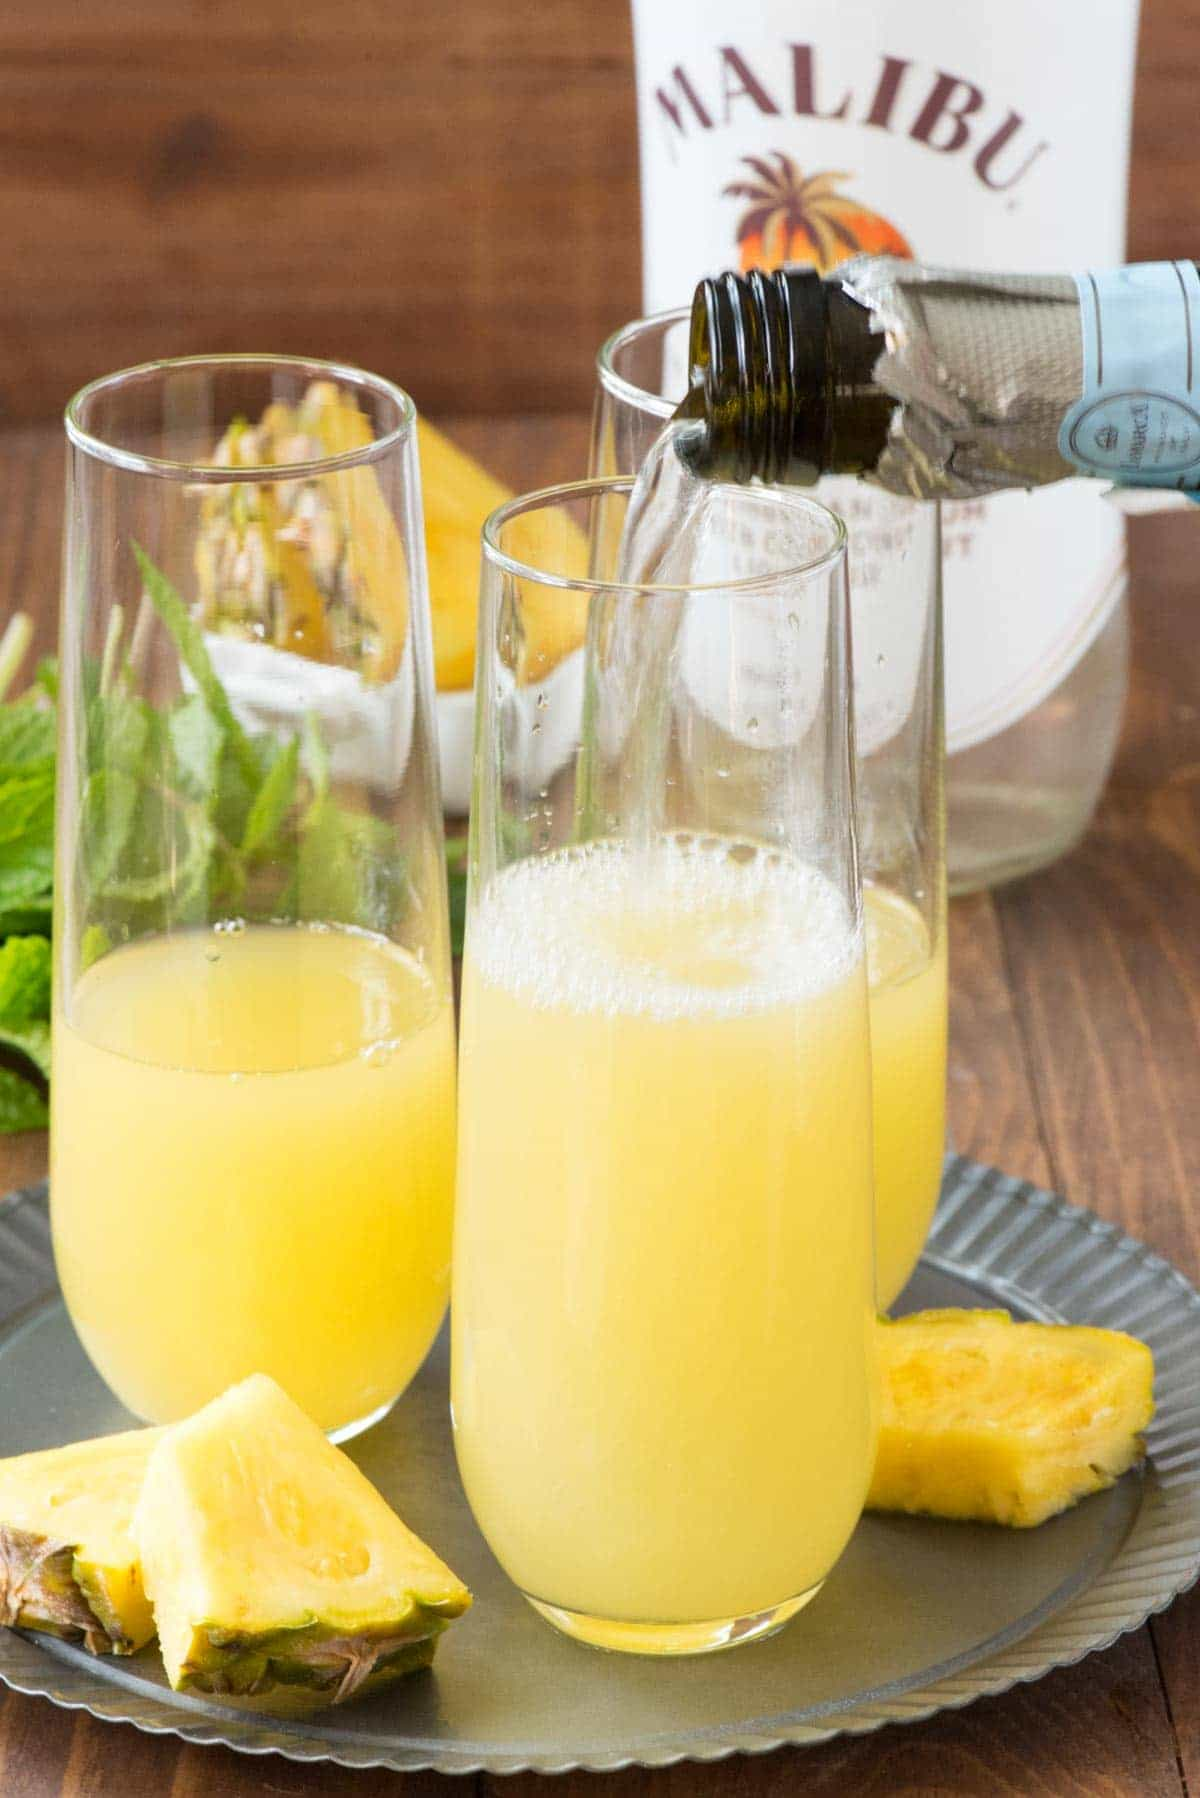 Adding Prosecco into three drinking glasses to make Hawaiian Mimosas .